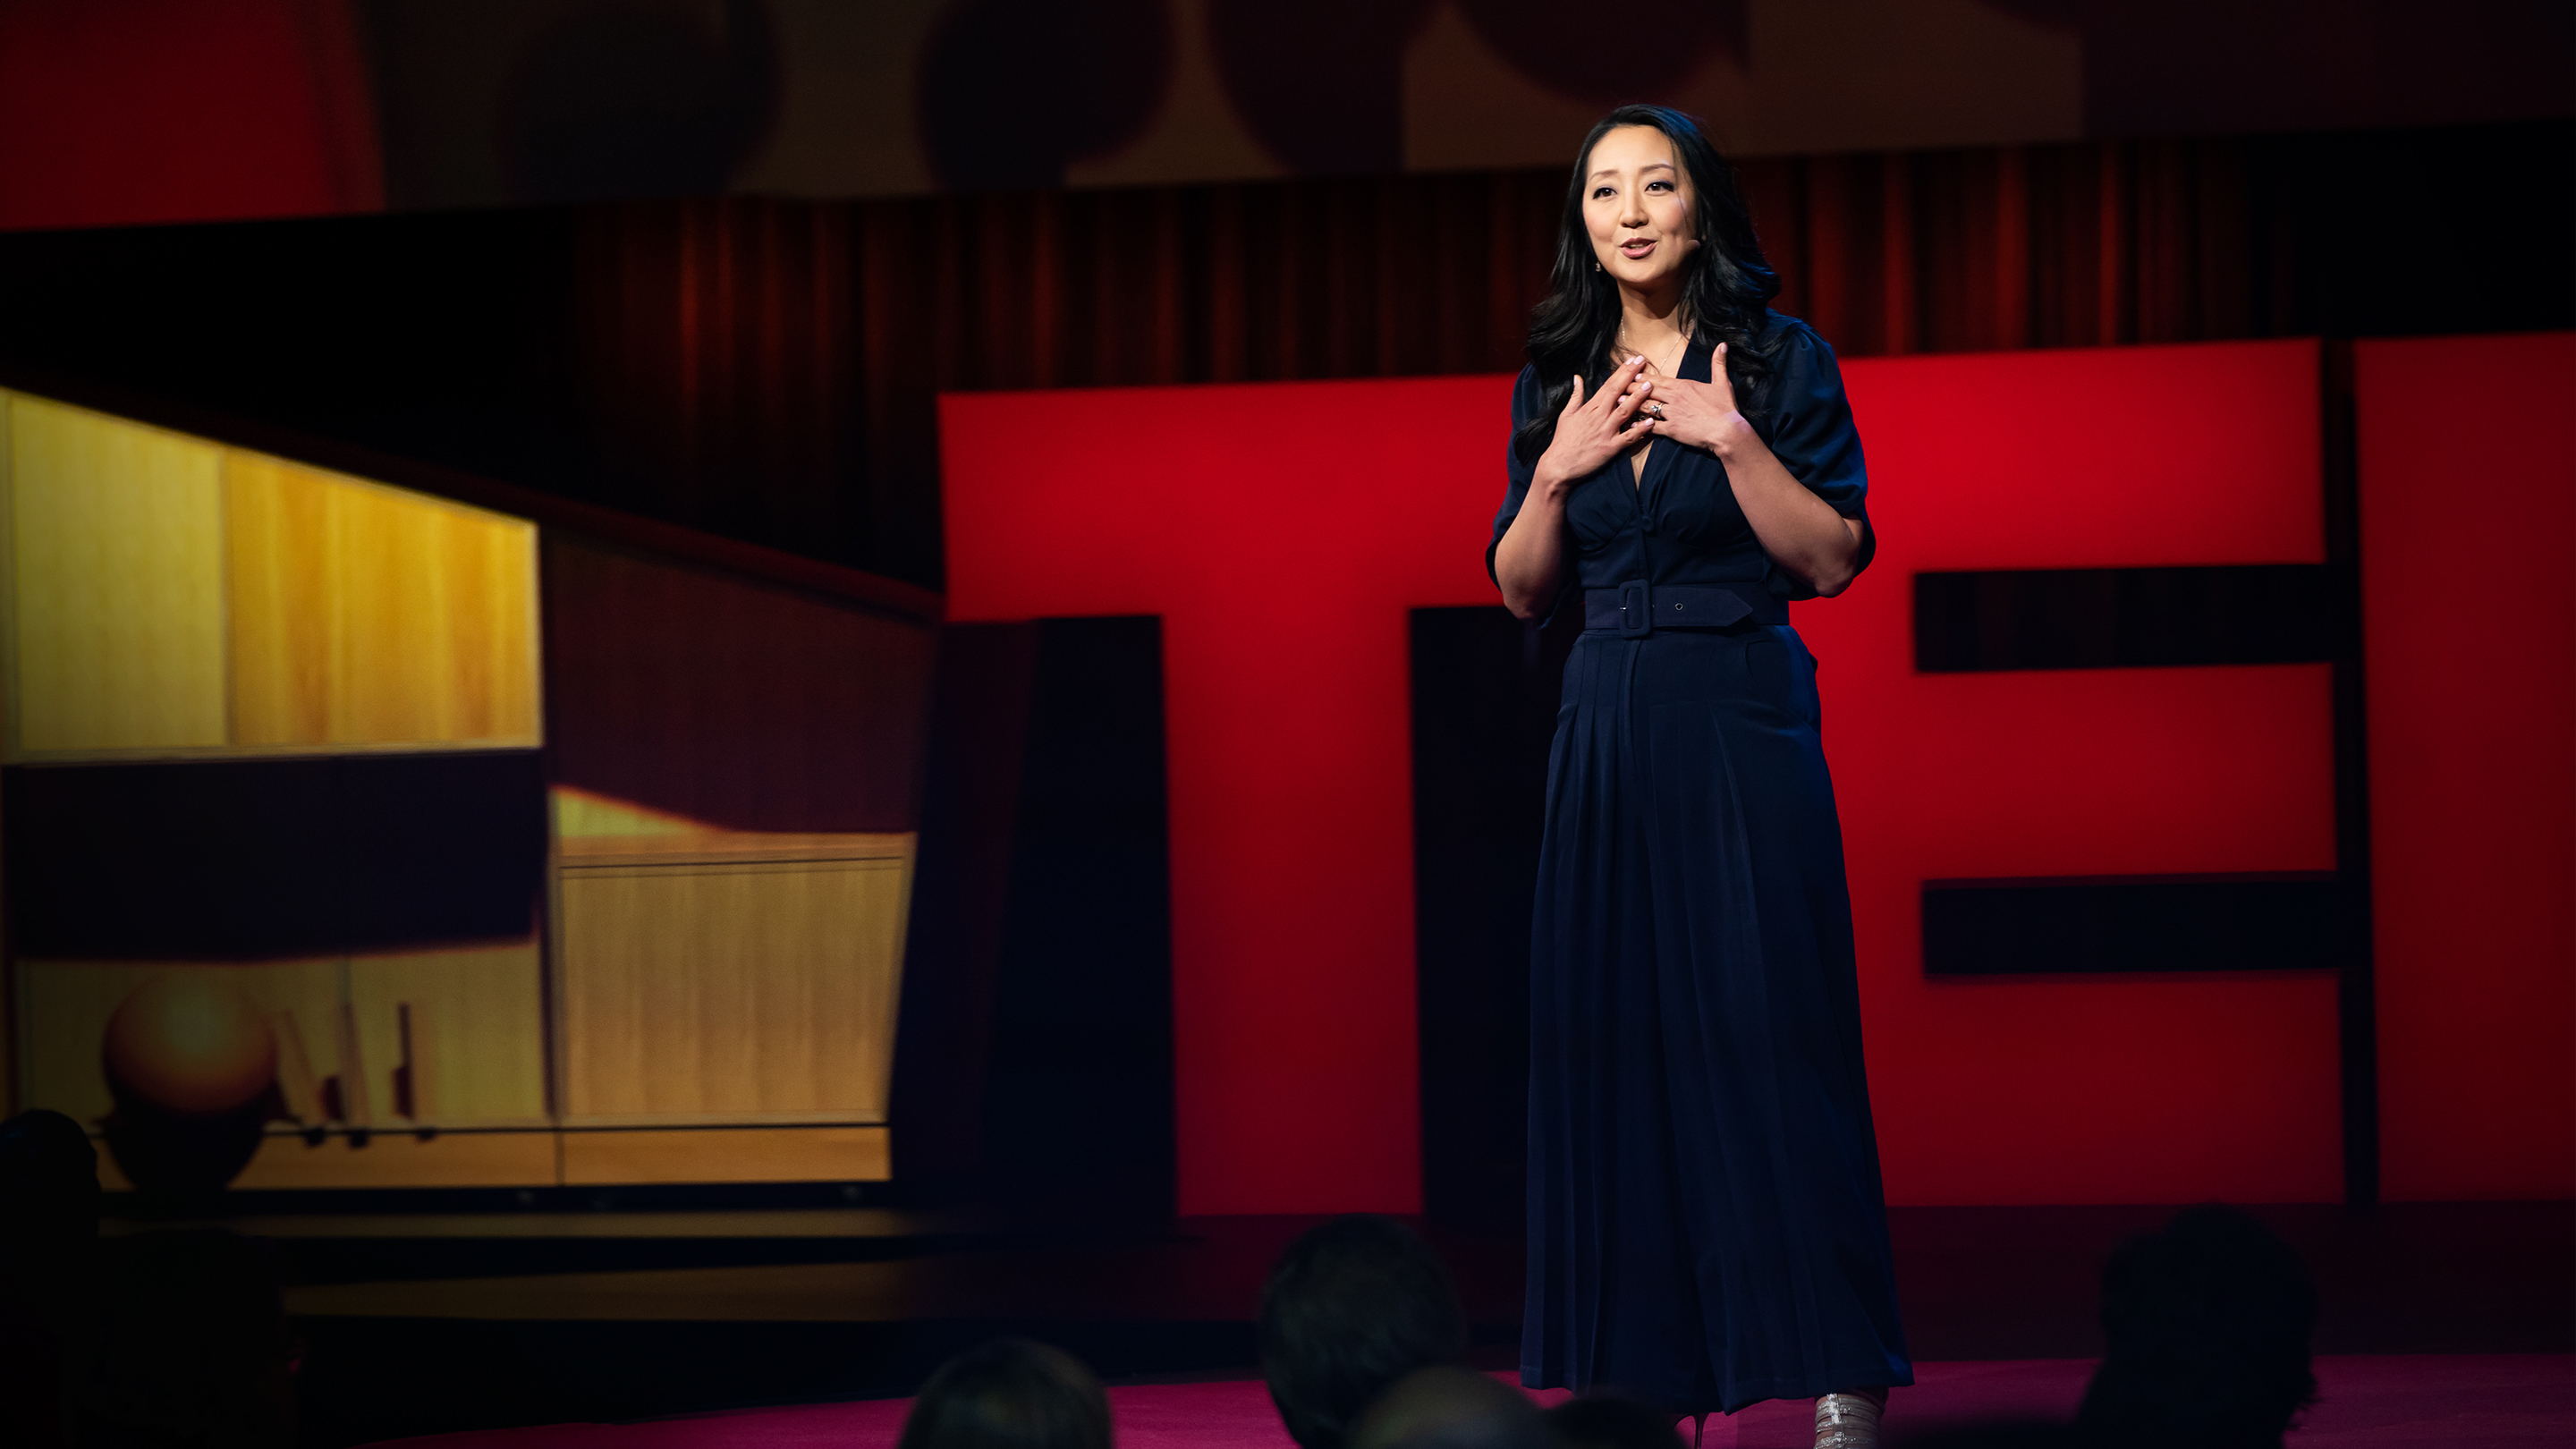 Taiye Selasi Don T Ask Where I M From Ask Where I M A Local Ted Talk